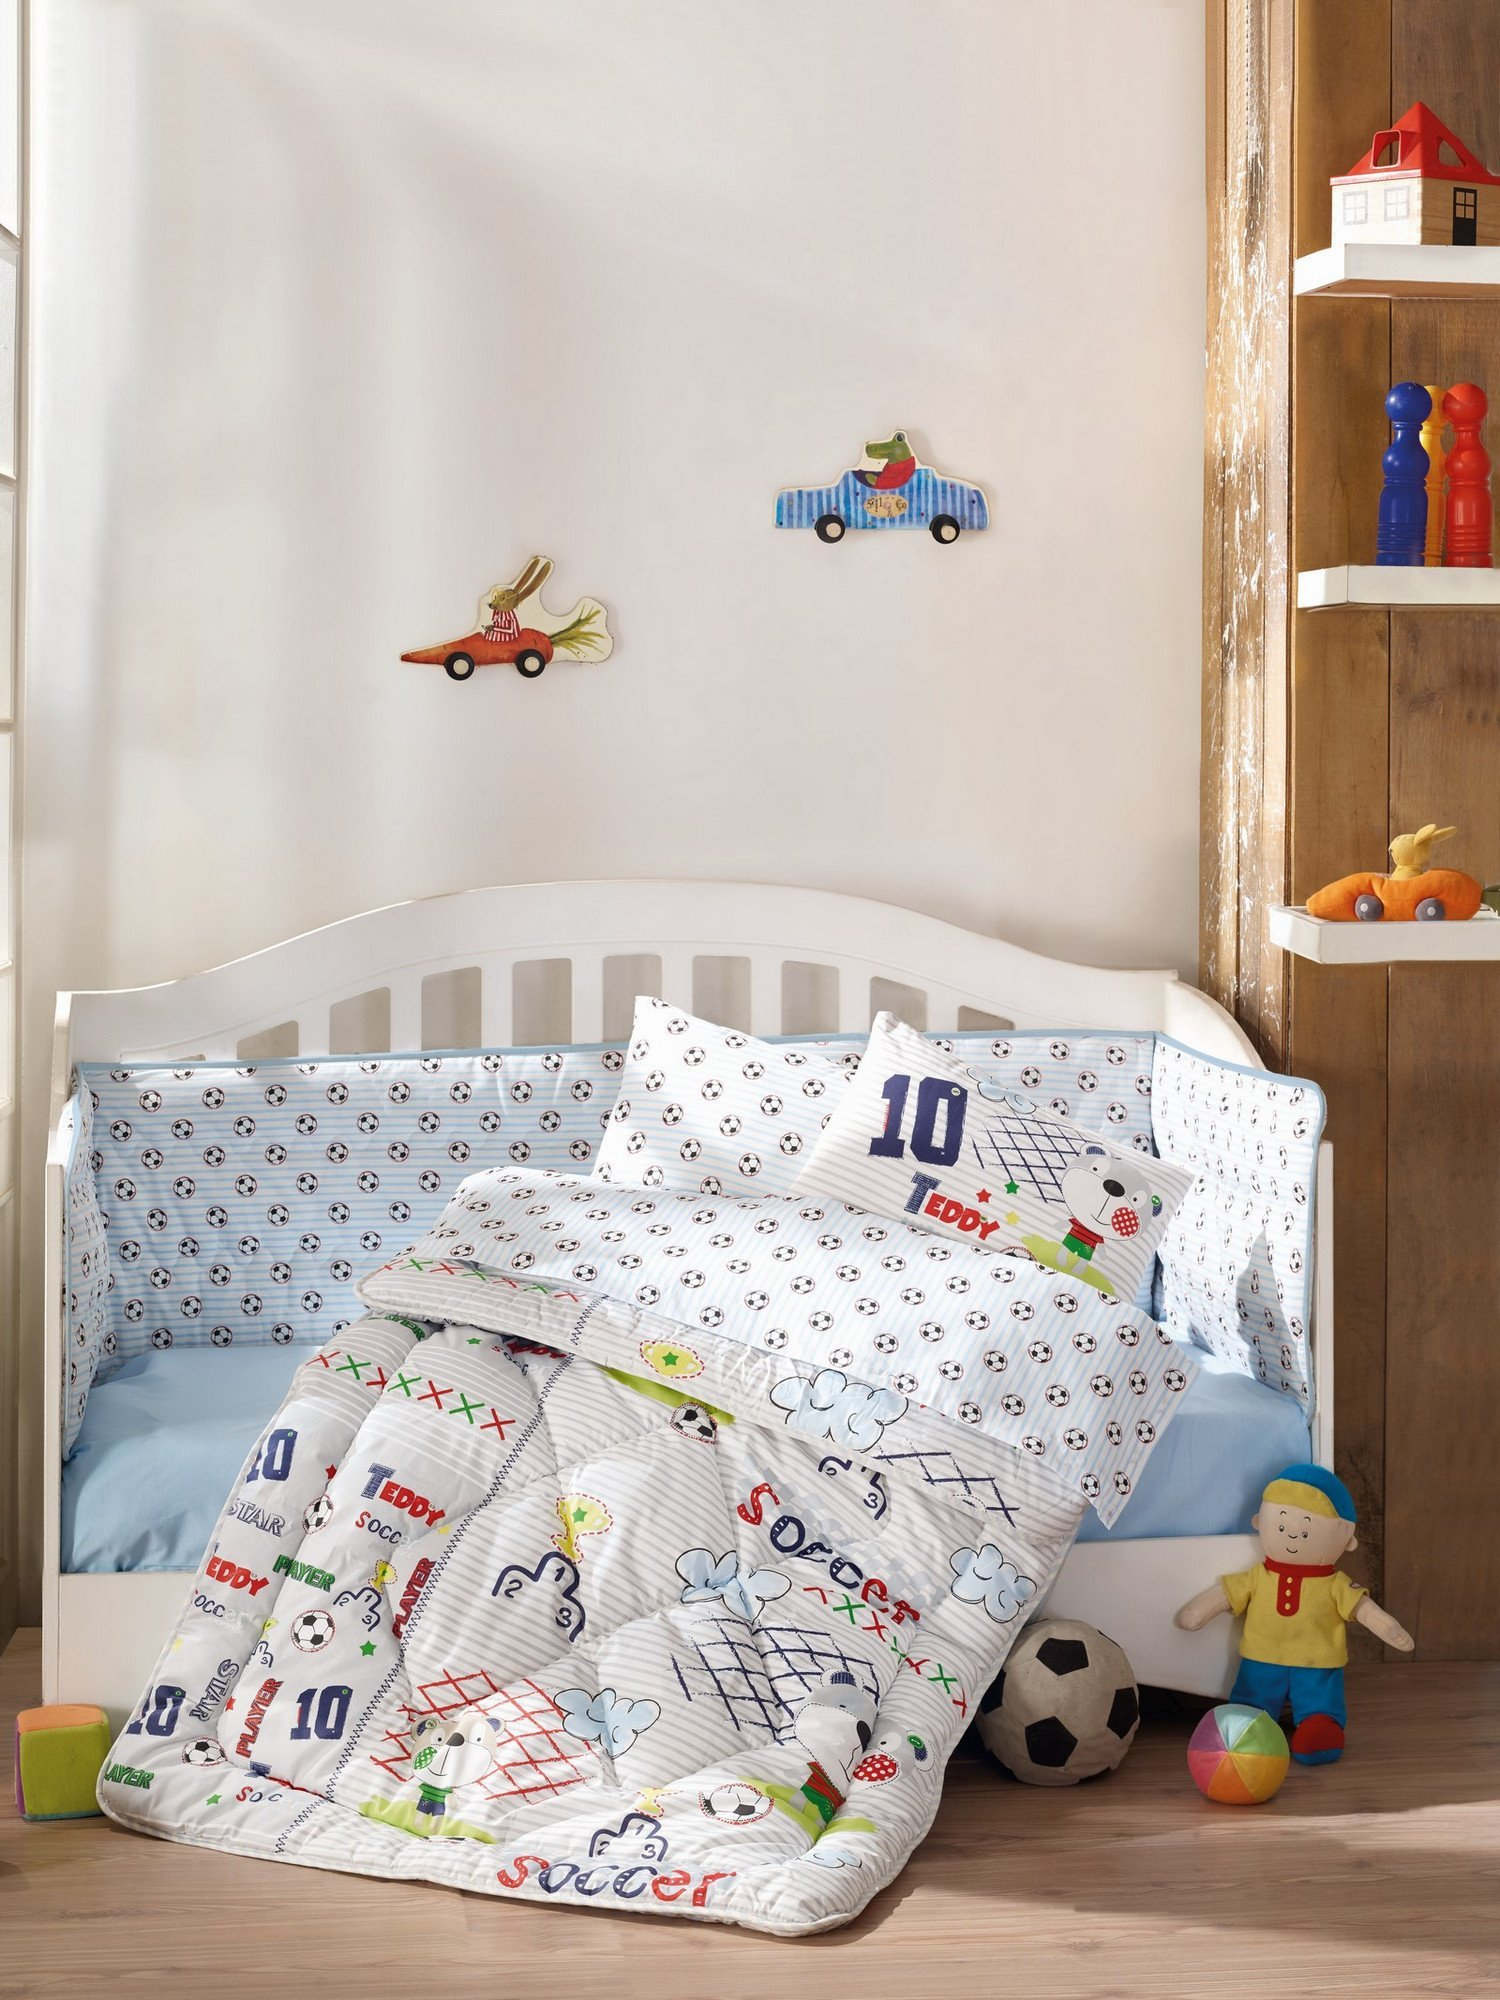 LaModaHome 6 Pcs Luxury Soft Colored Bedroom Bedding 100% Cotton Ranforce Baby Sleep Set Quilt Protector/Soft Relaxing Comfortable Pattern Design Space Animal/Baby Bed Size with Flat Seet